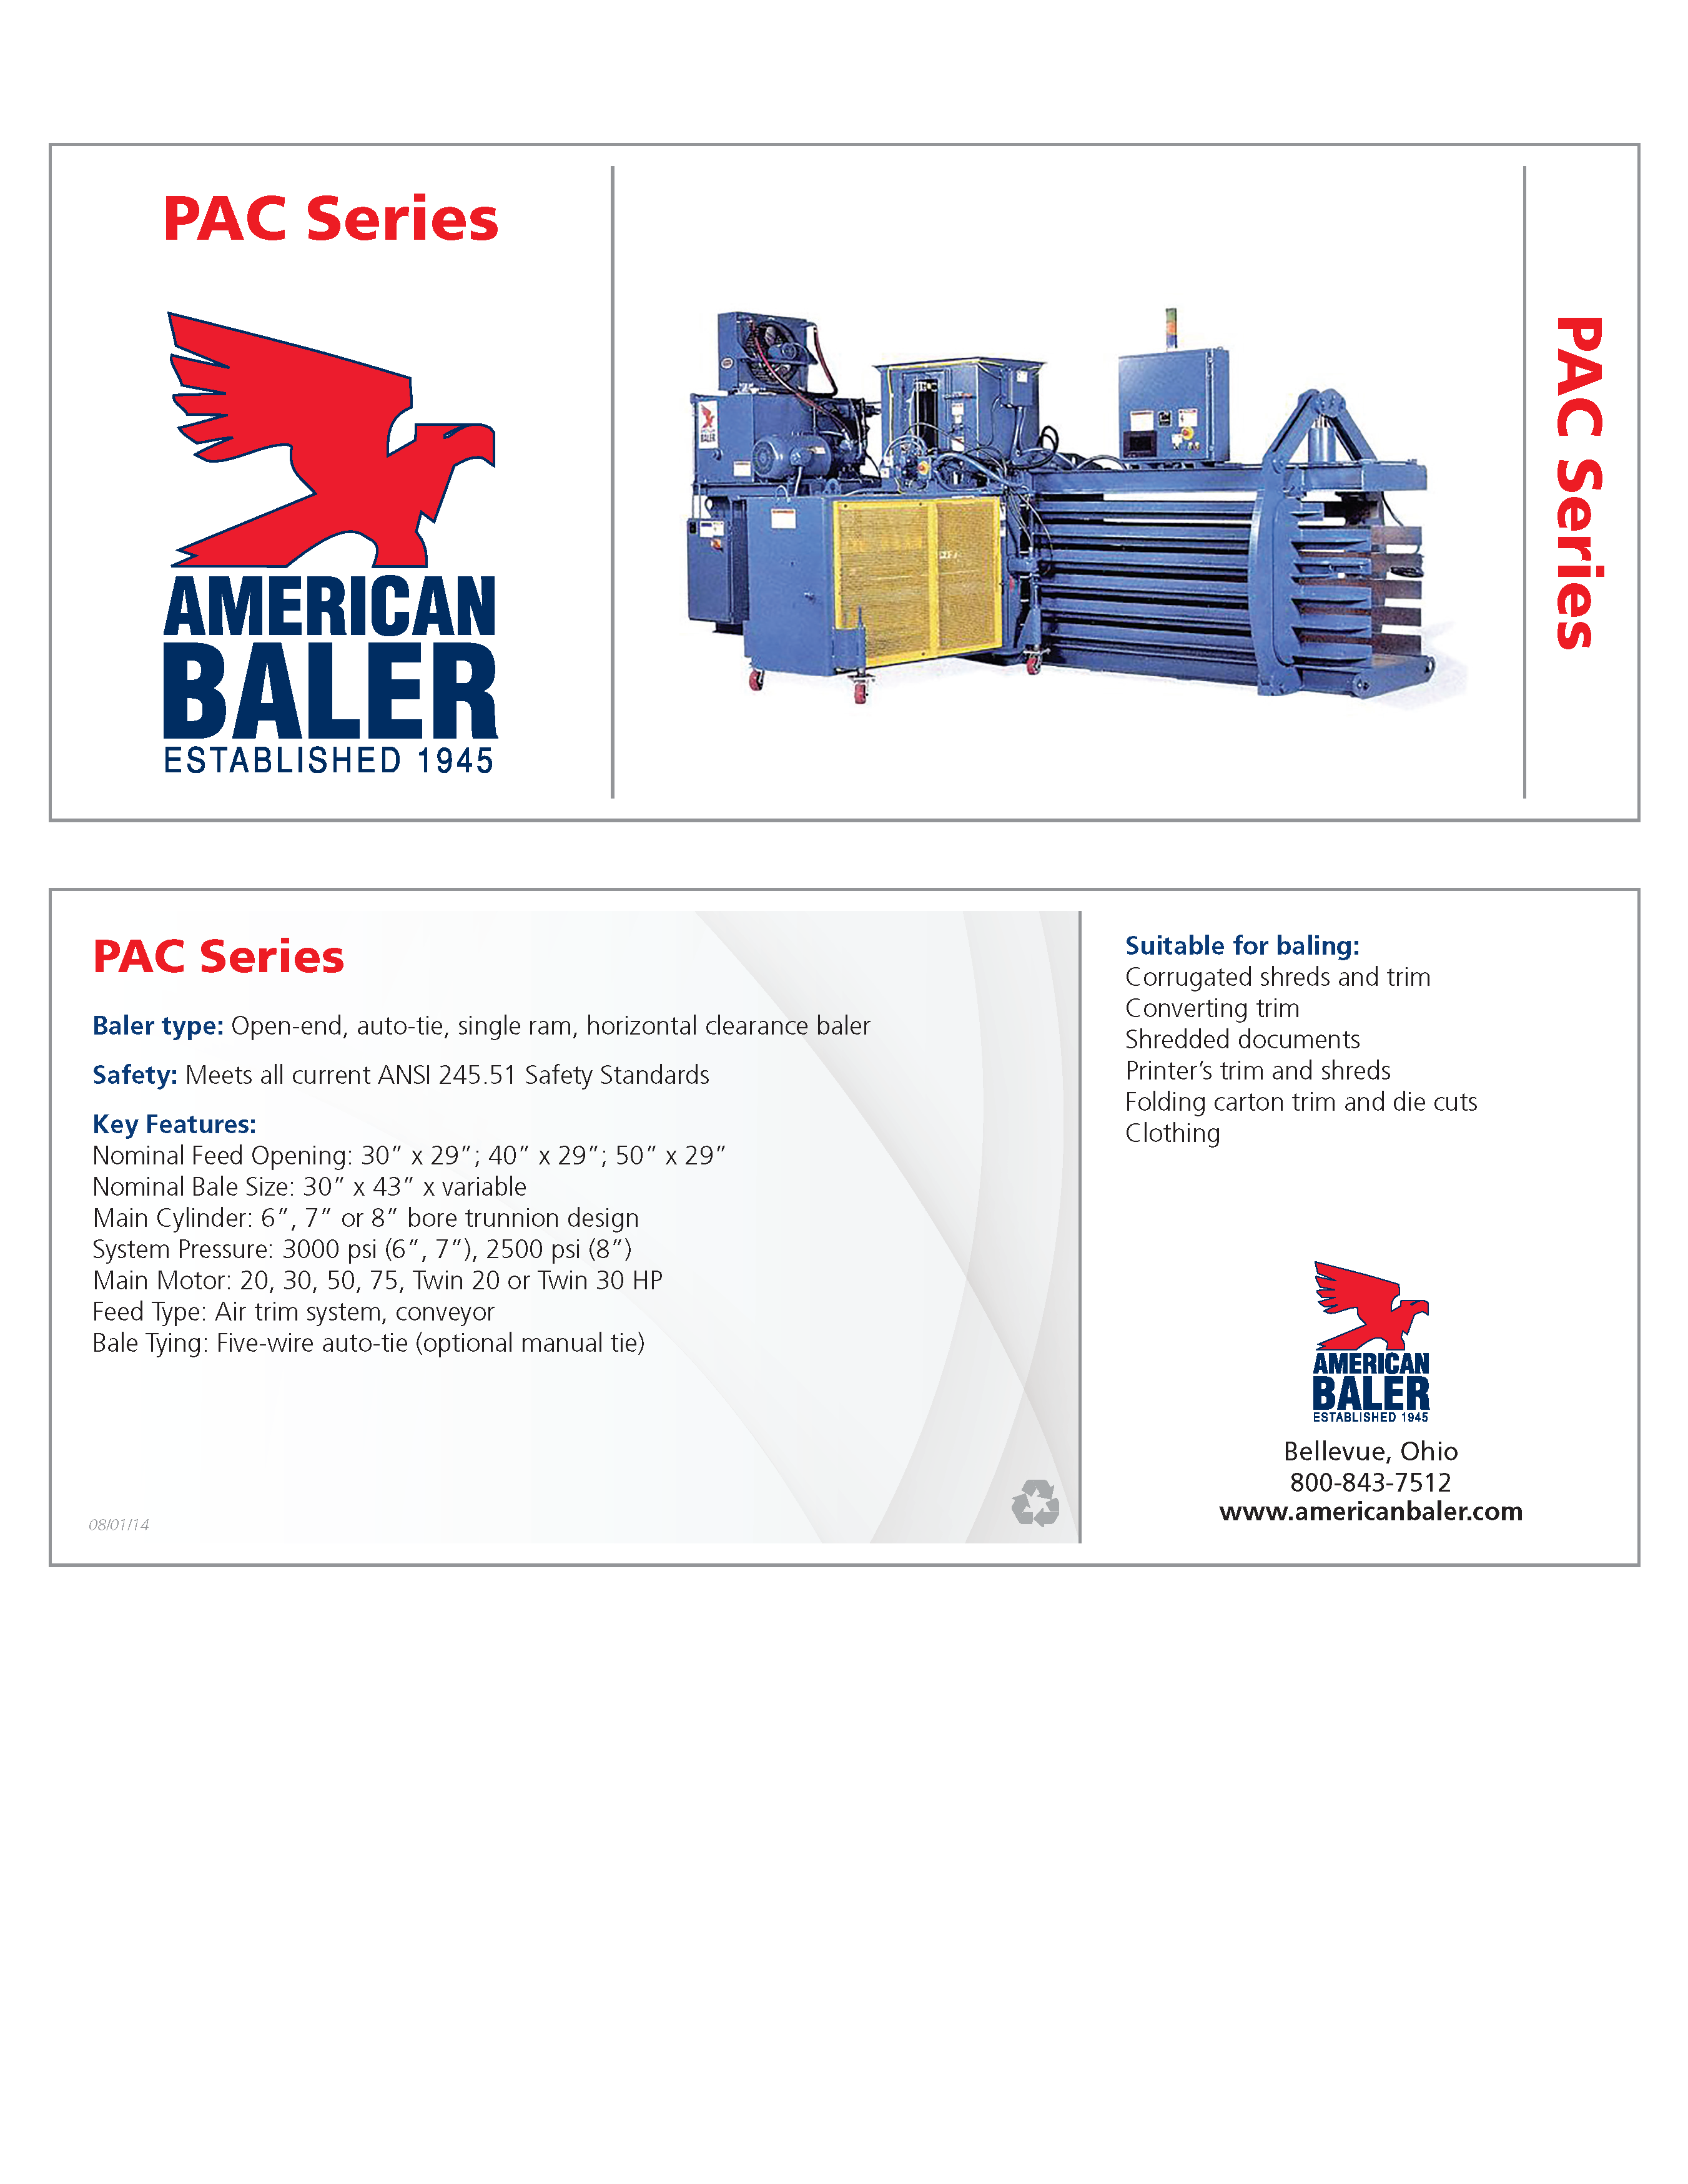 Learn more about the PAC Series Baler in the American Baler Brochure.